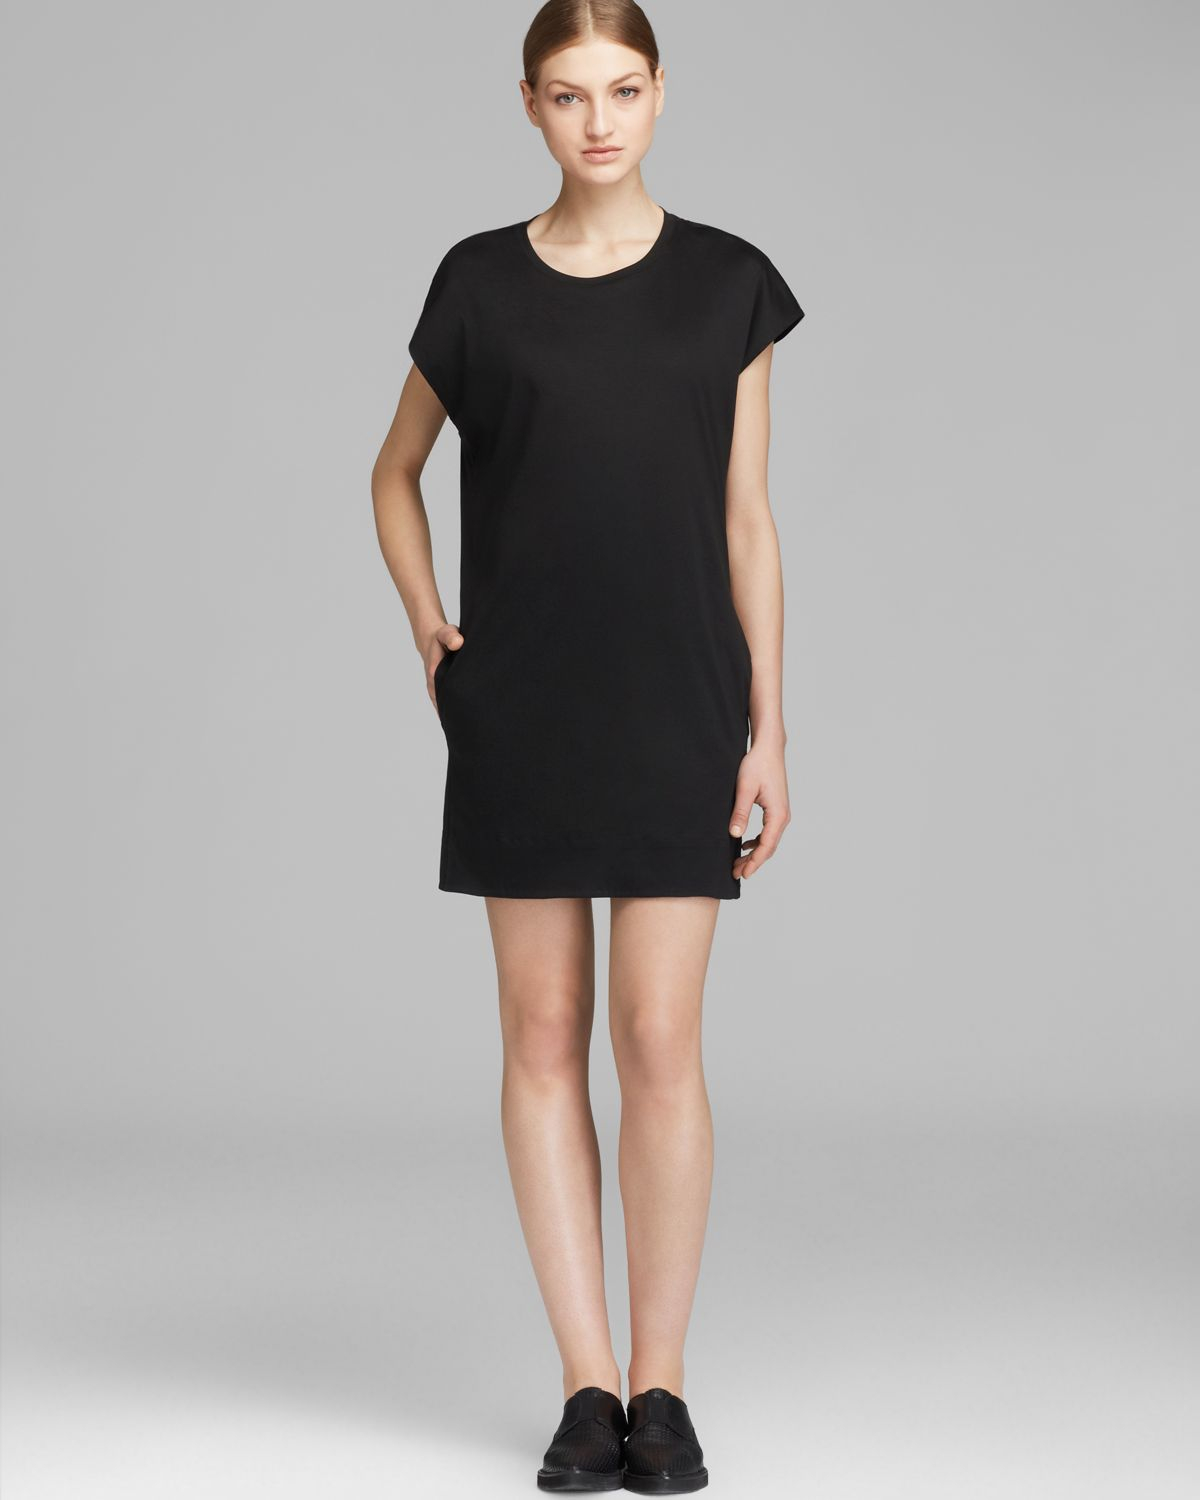 Black t shirt jersey dress - Gallery Previously Sold At Bloomingdale S Women S T Shirt Dresses